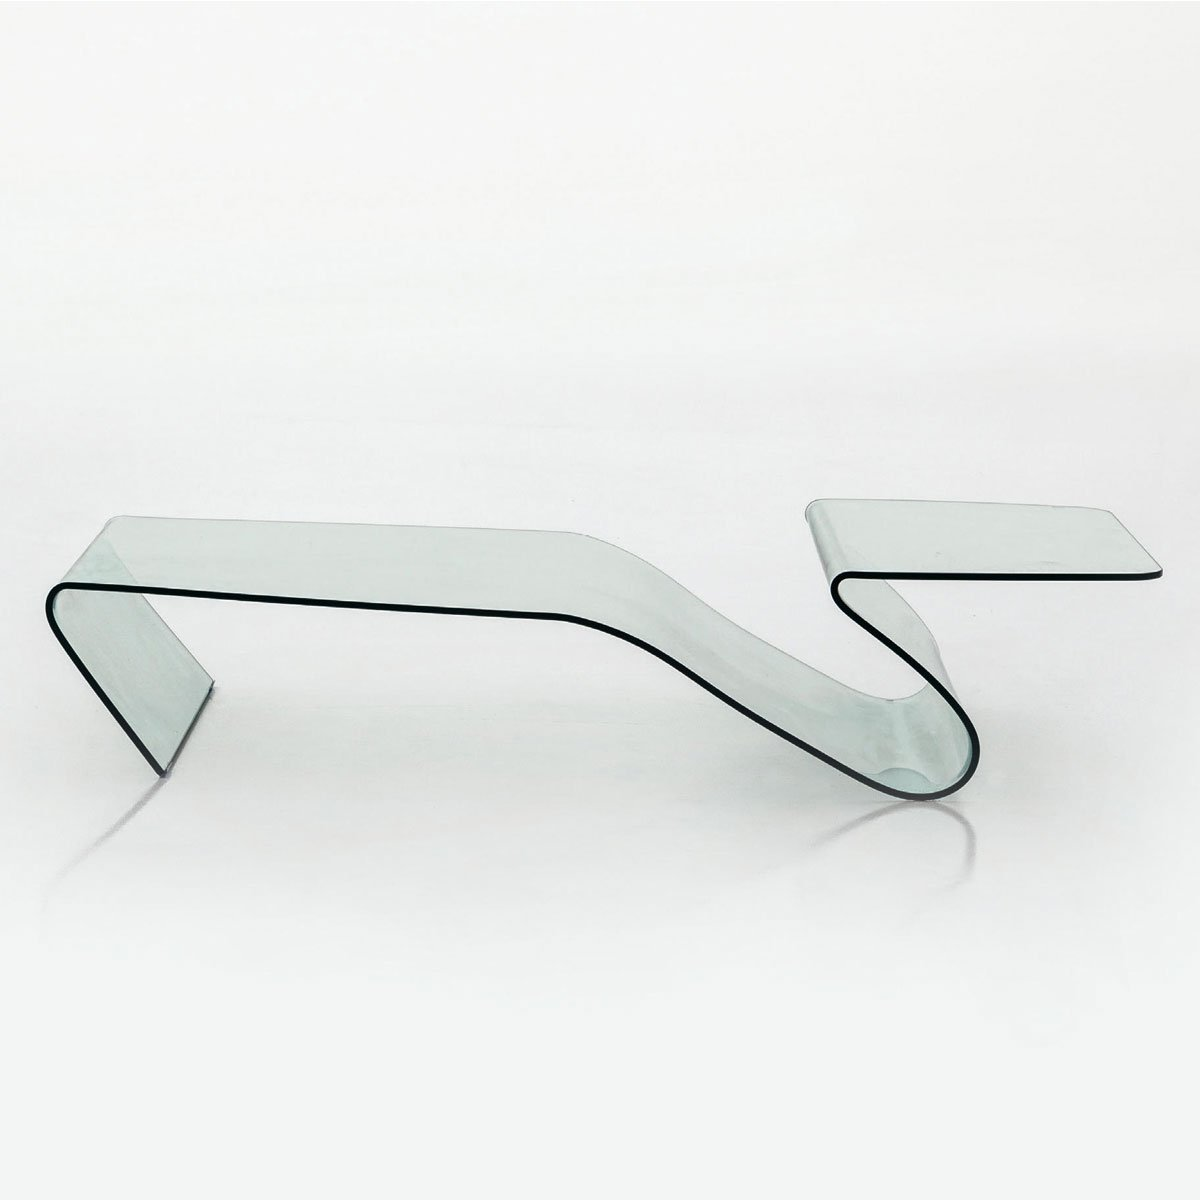 Taky Curved Glass Coffee Table: Alaric Curved Glass Coffee Table